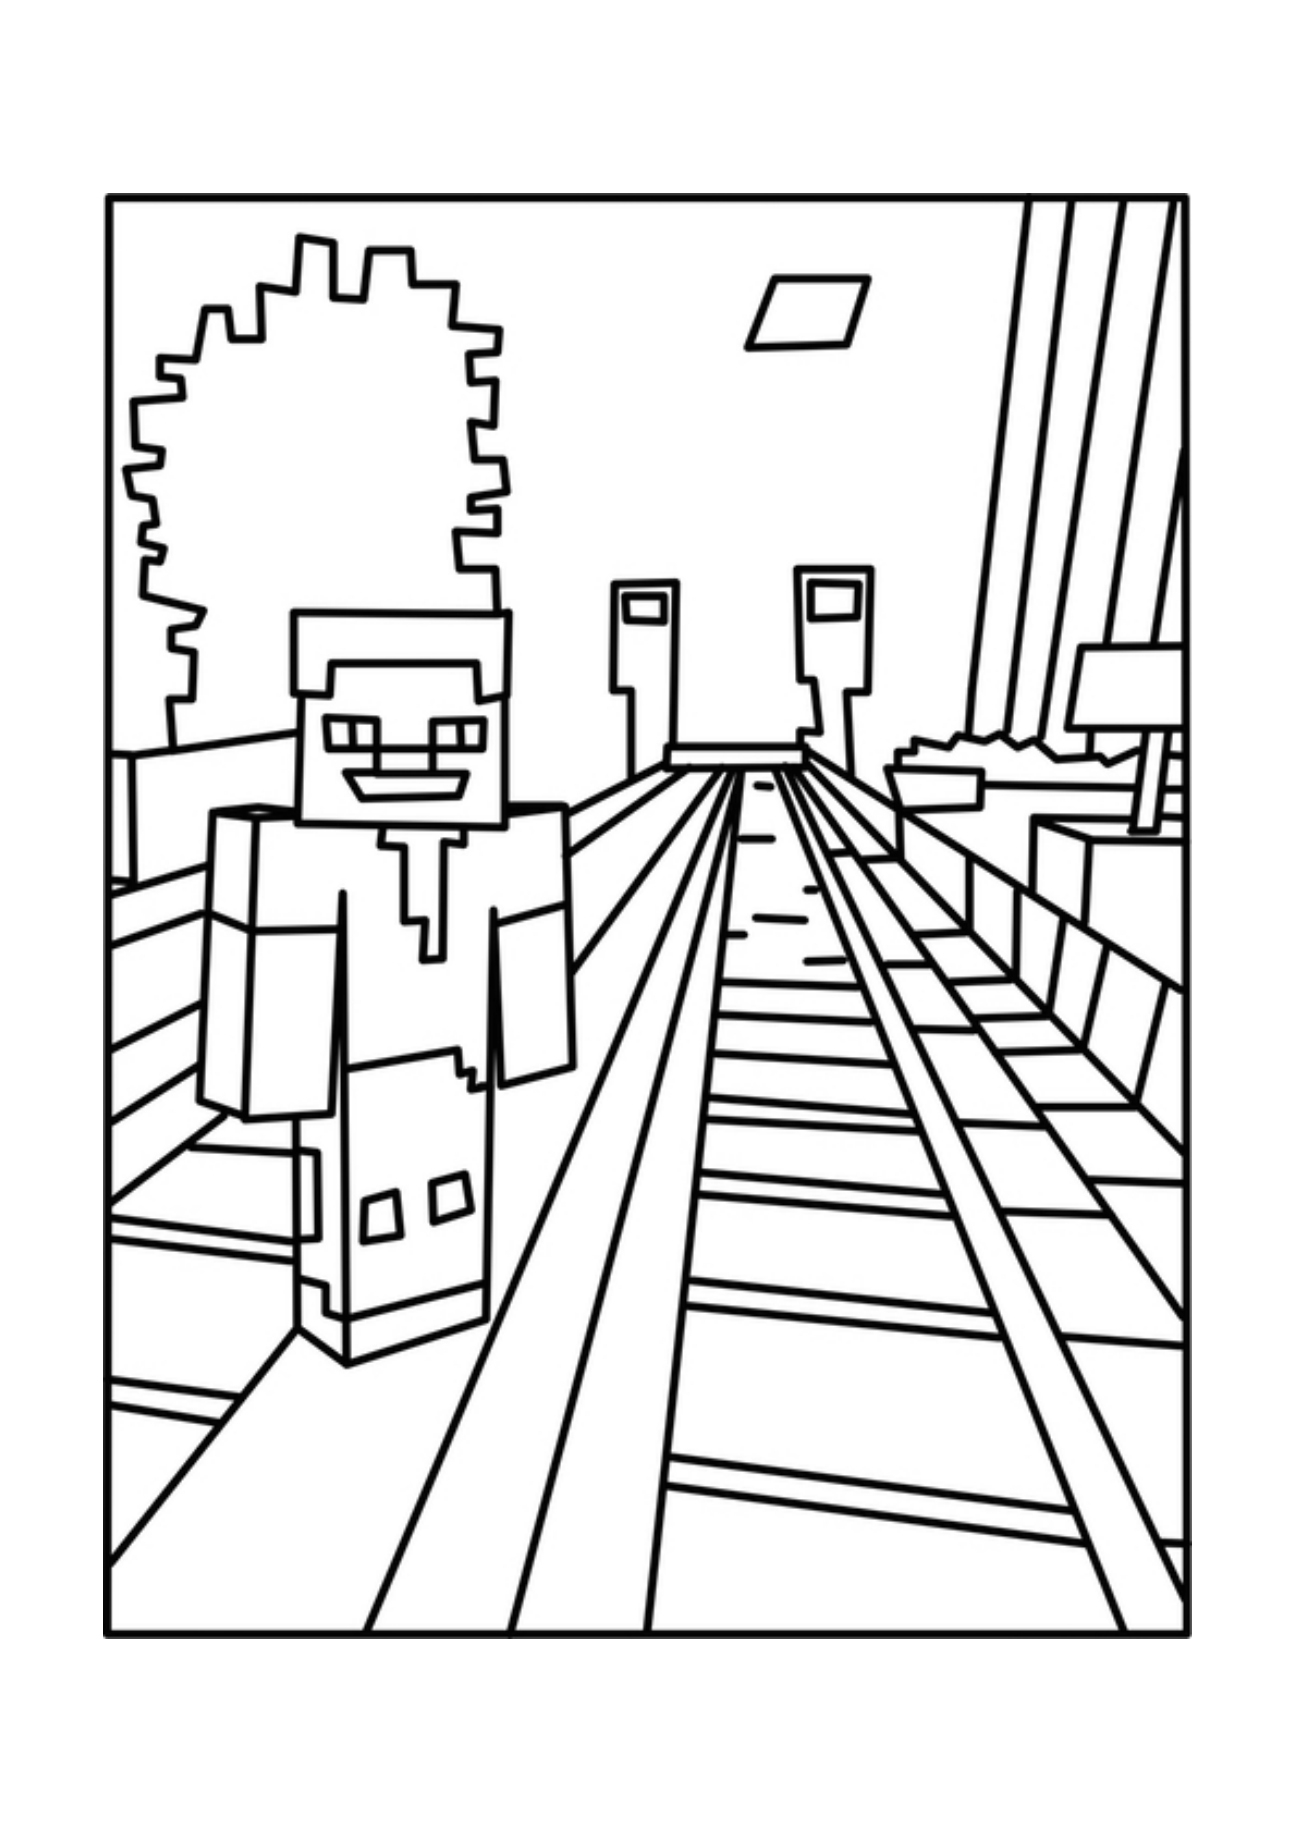 minecraft coloring sheets to print minecraft happy birthday coloring pages coloring pages minecraft coloring sheets to print